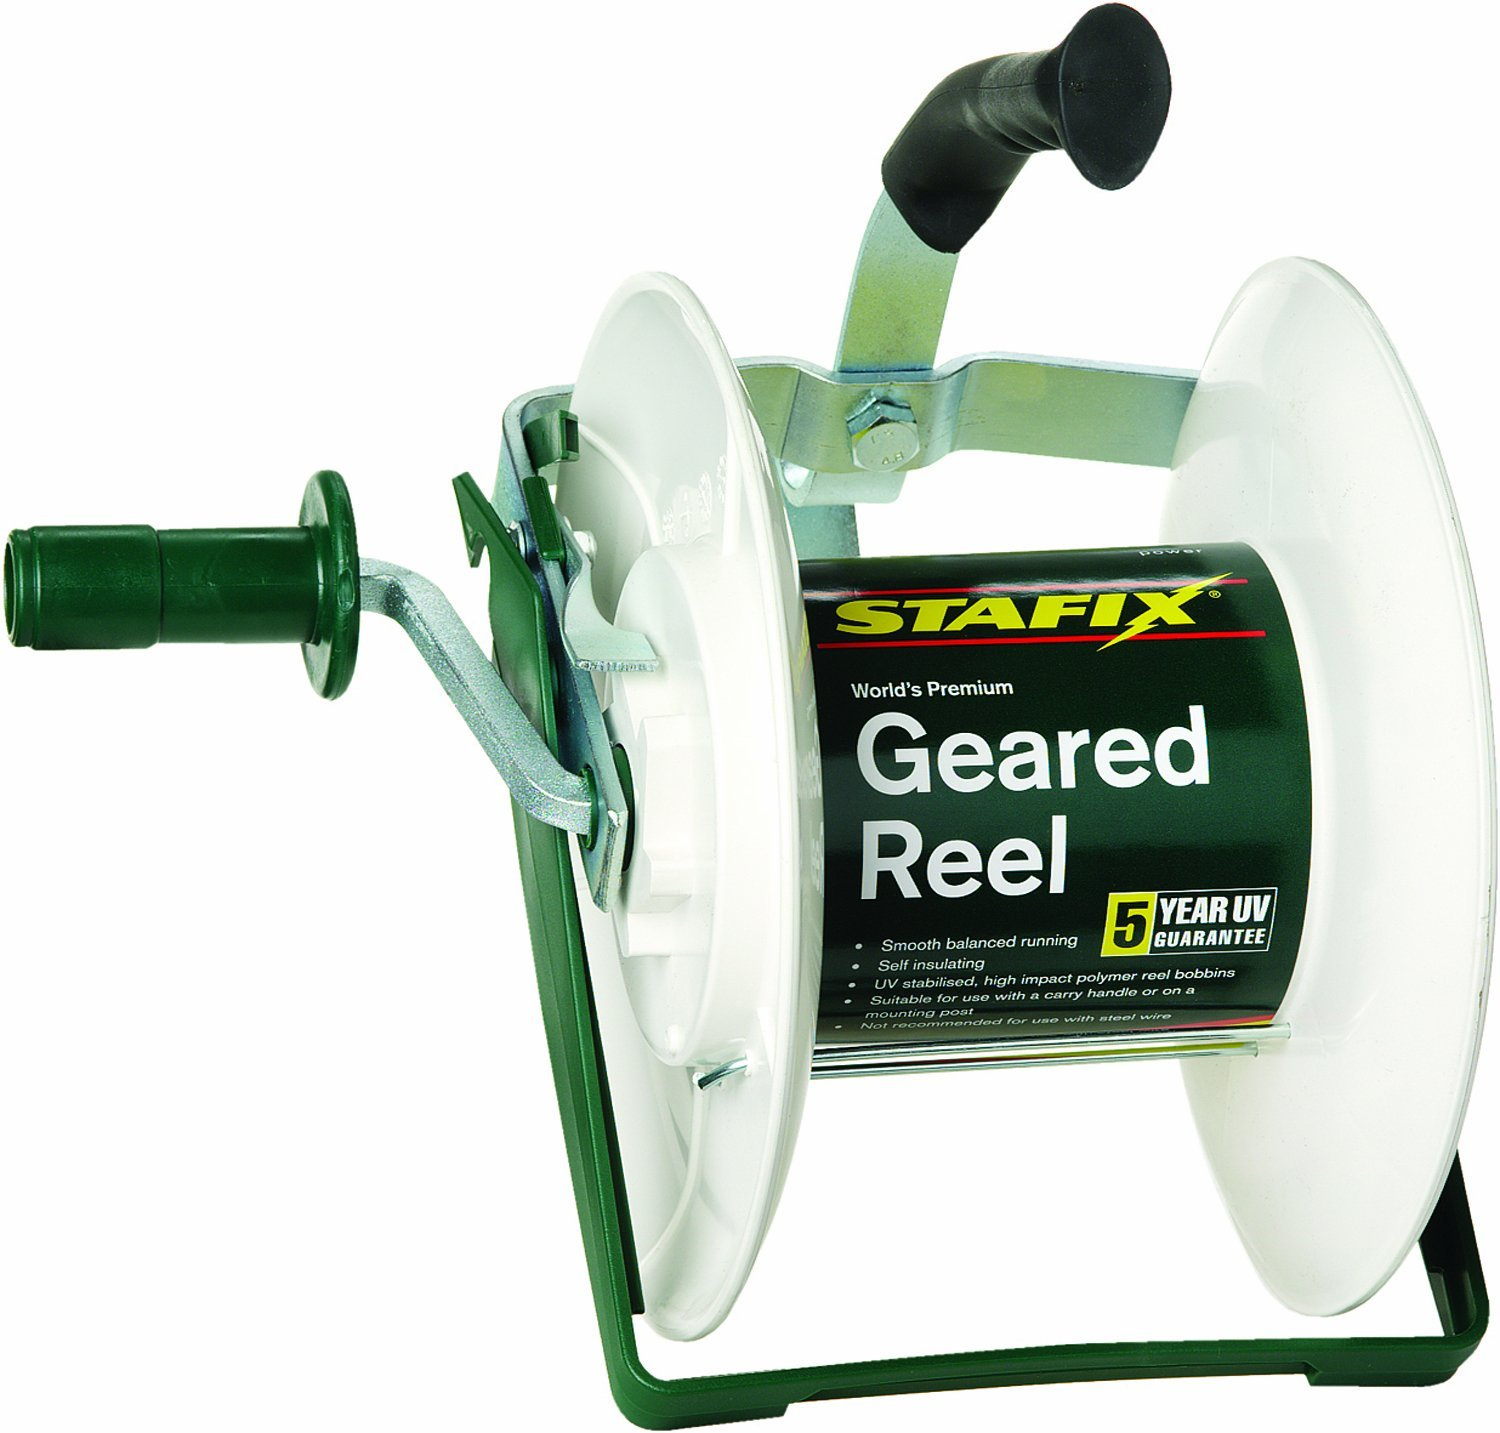 Stafix Geared Reel Horizon Livestock Amp Poultry Supply